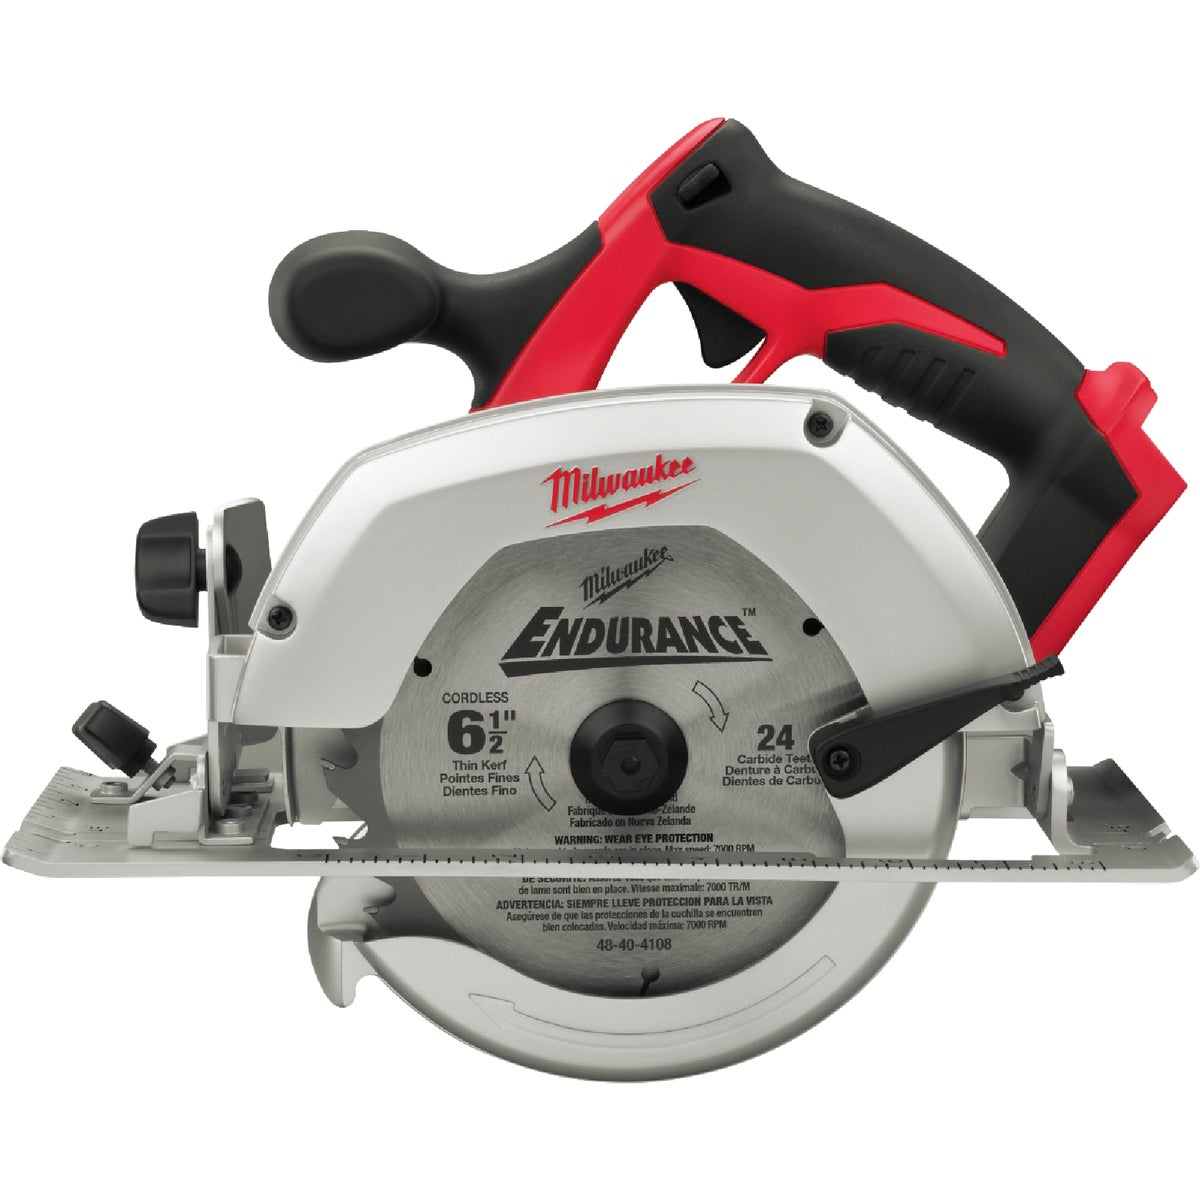 "M18 6-1/2"" CIRC SAW BARE - 263020 by Milwaukee Elec Tool"